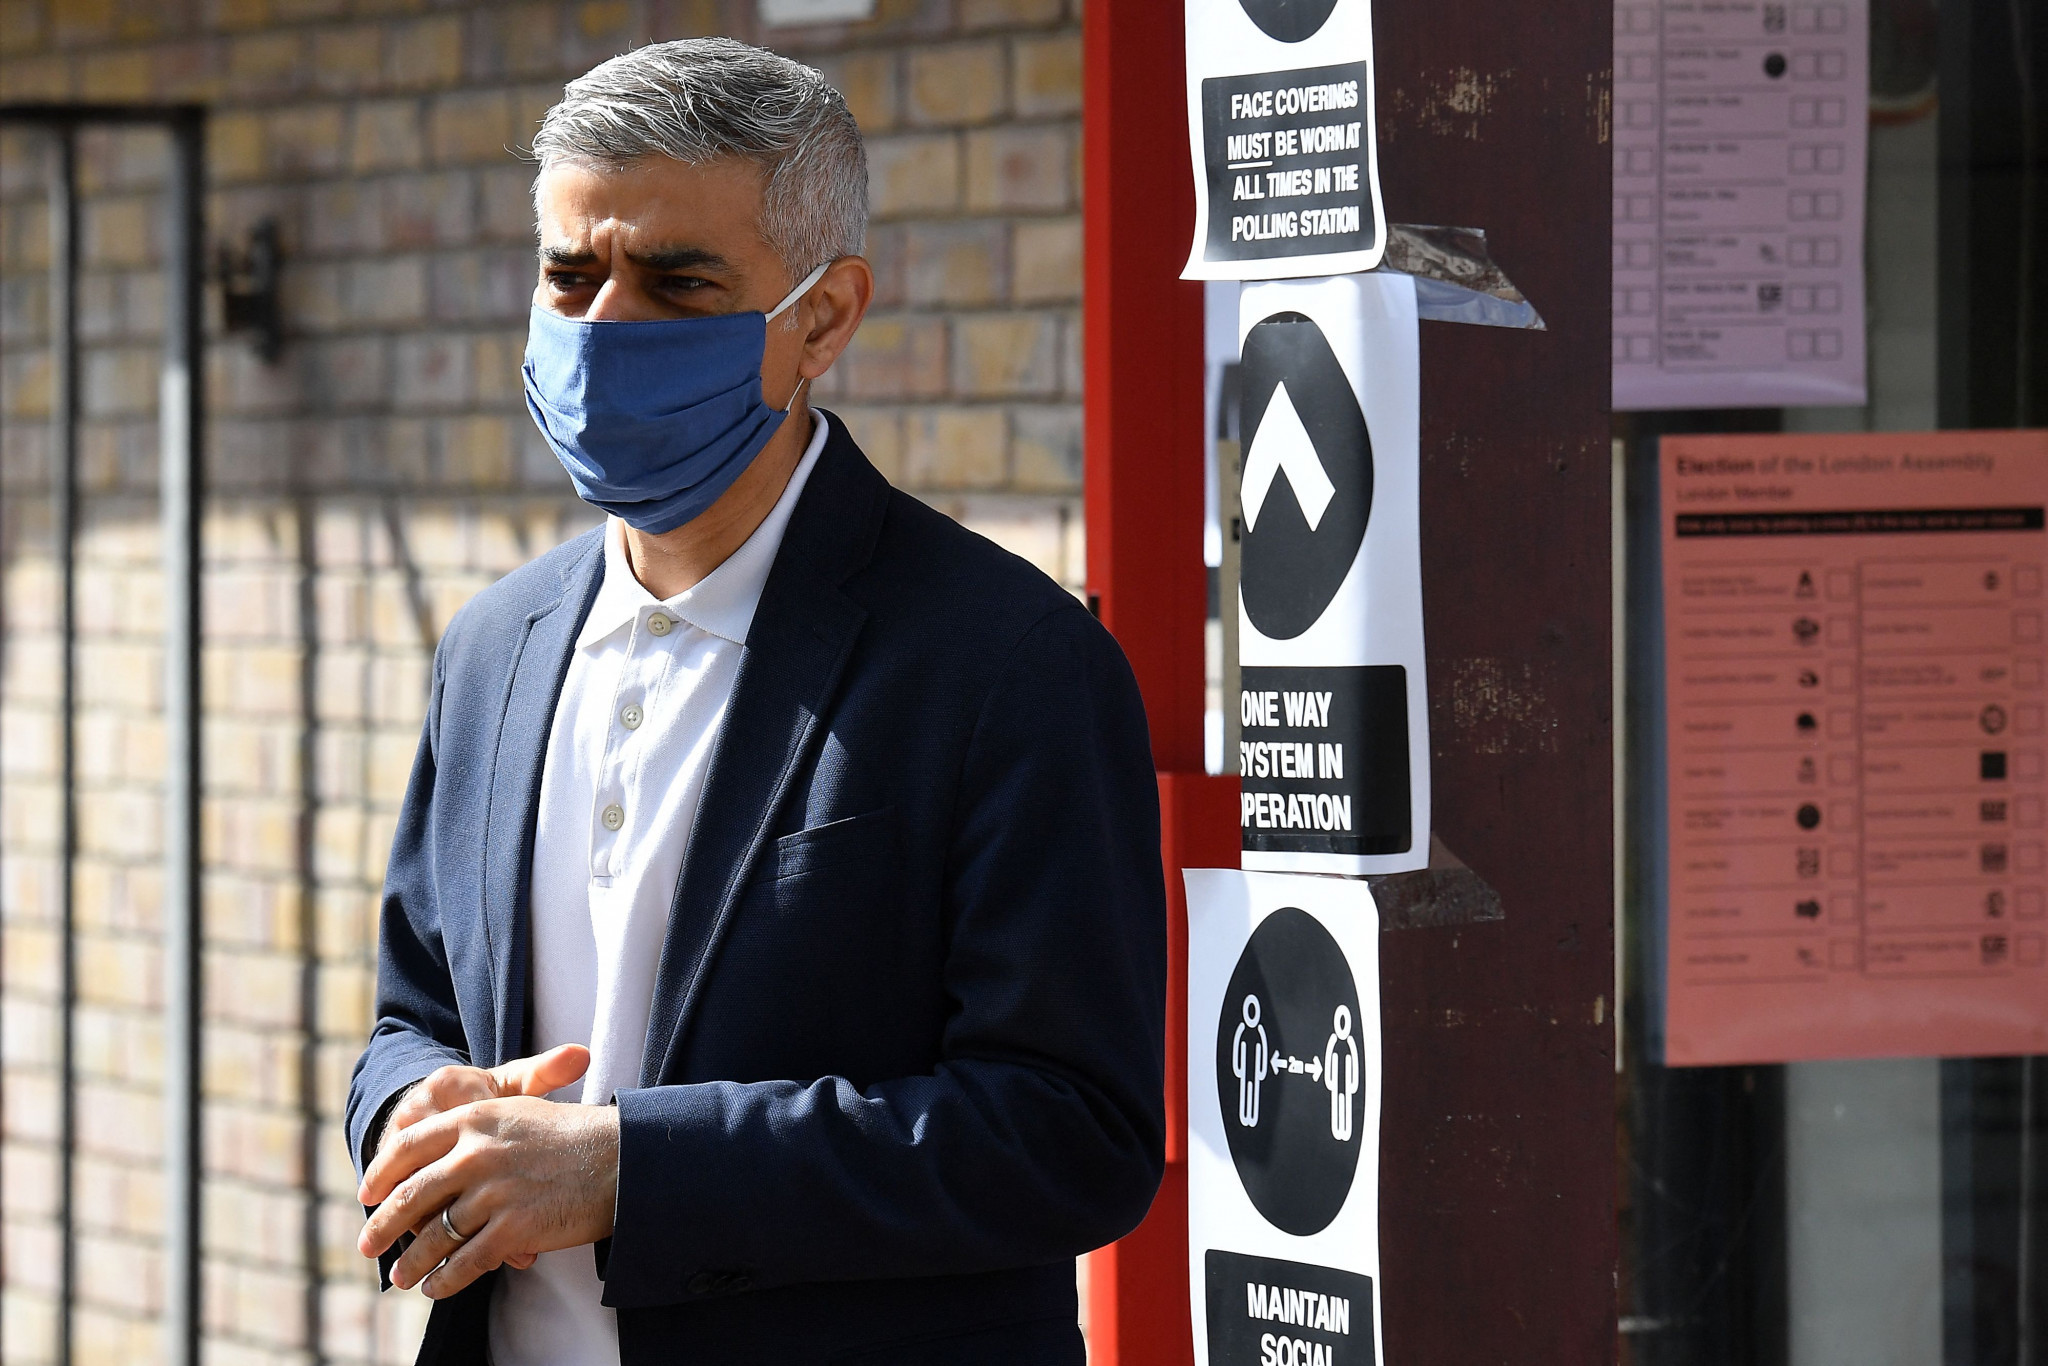 Sadiq Khan pledged to explore hosting the Olympic and Paralympic Games if re-elected as London Mayor, a victory confirmed last night ©Getty Images